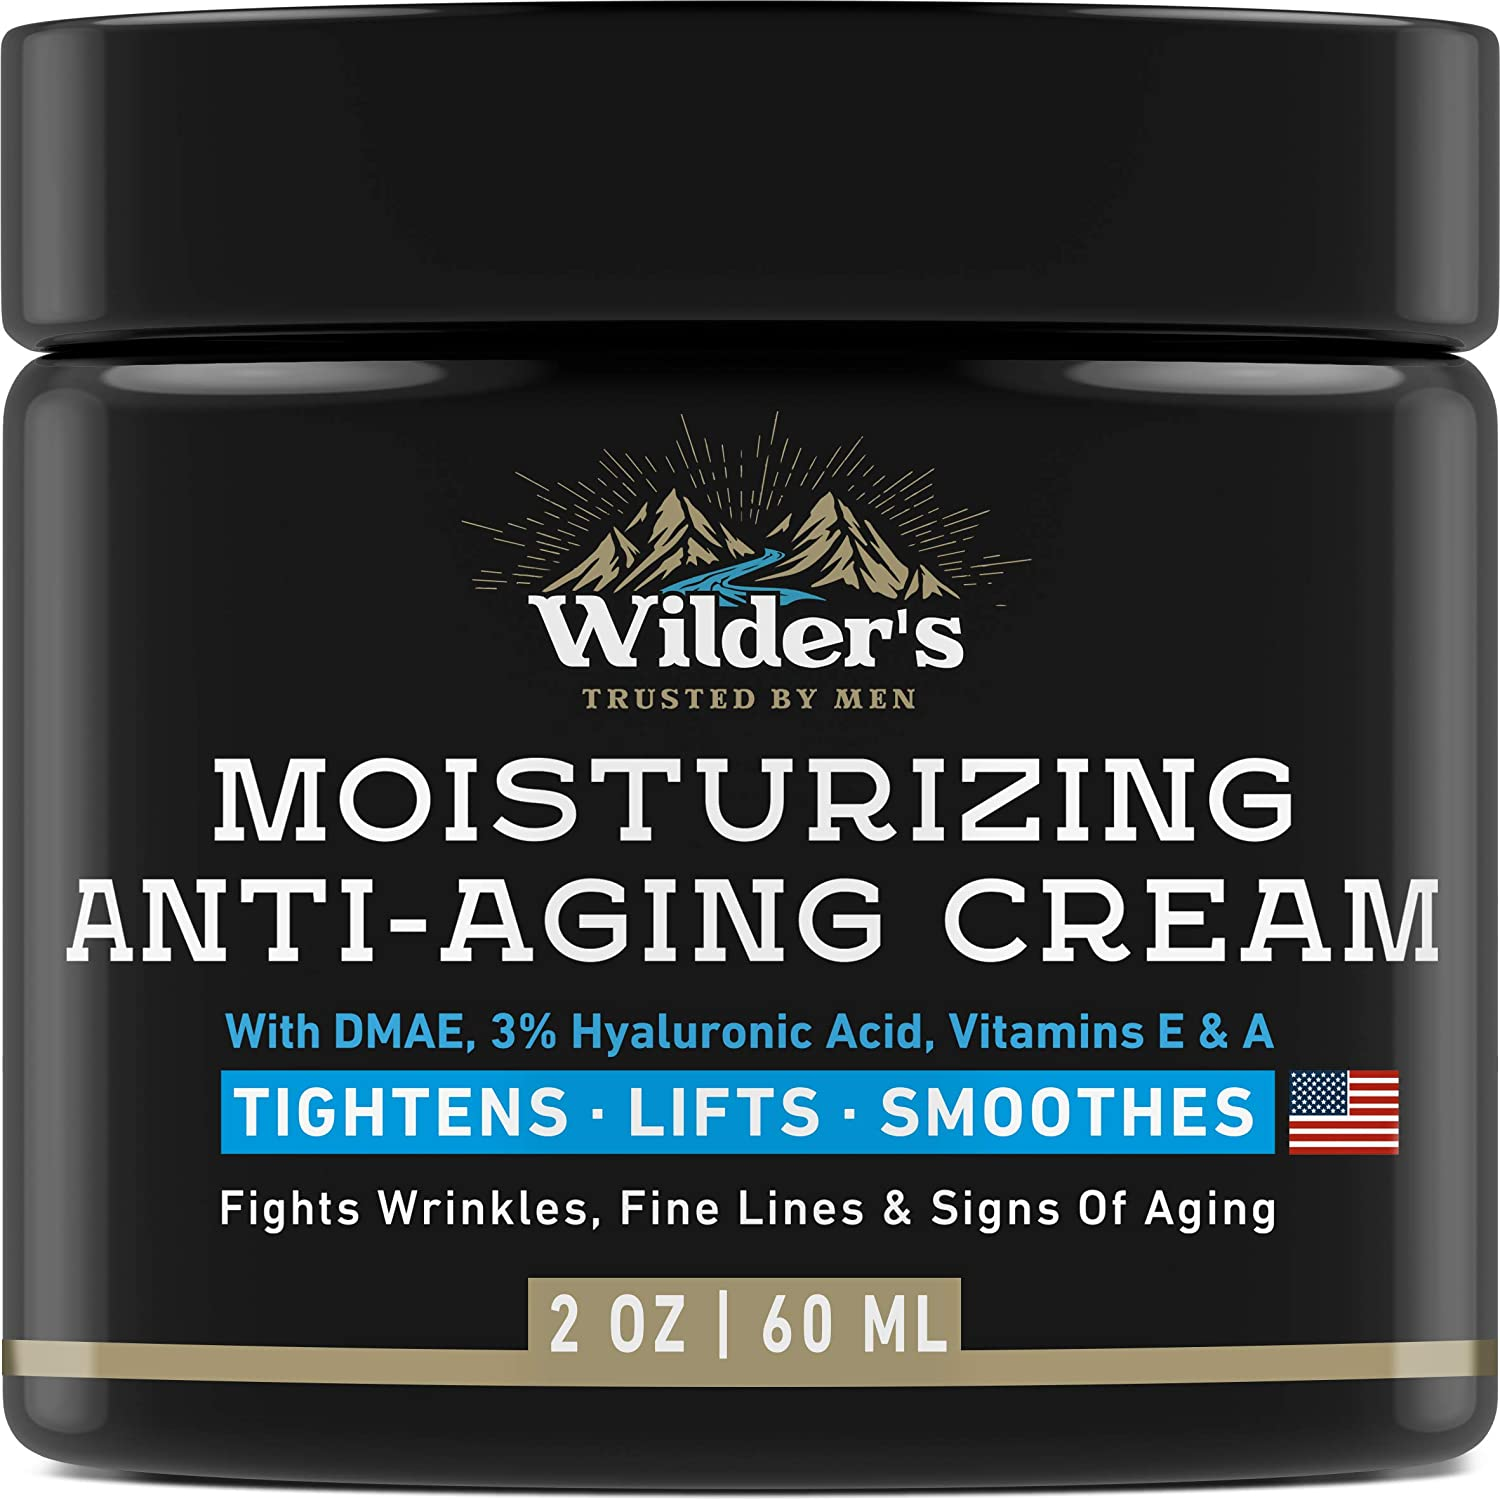 Men's Anti Aging Face Cream Moisturizer - Premium Skin Care for Men with Collagen, Retinol, Hyaluronic Acid - Made in USA - Fast Anti-Age Effect Day & Night - Wrinkle Free Facial Men Moisturizer 2Oz